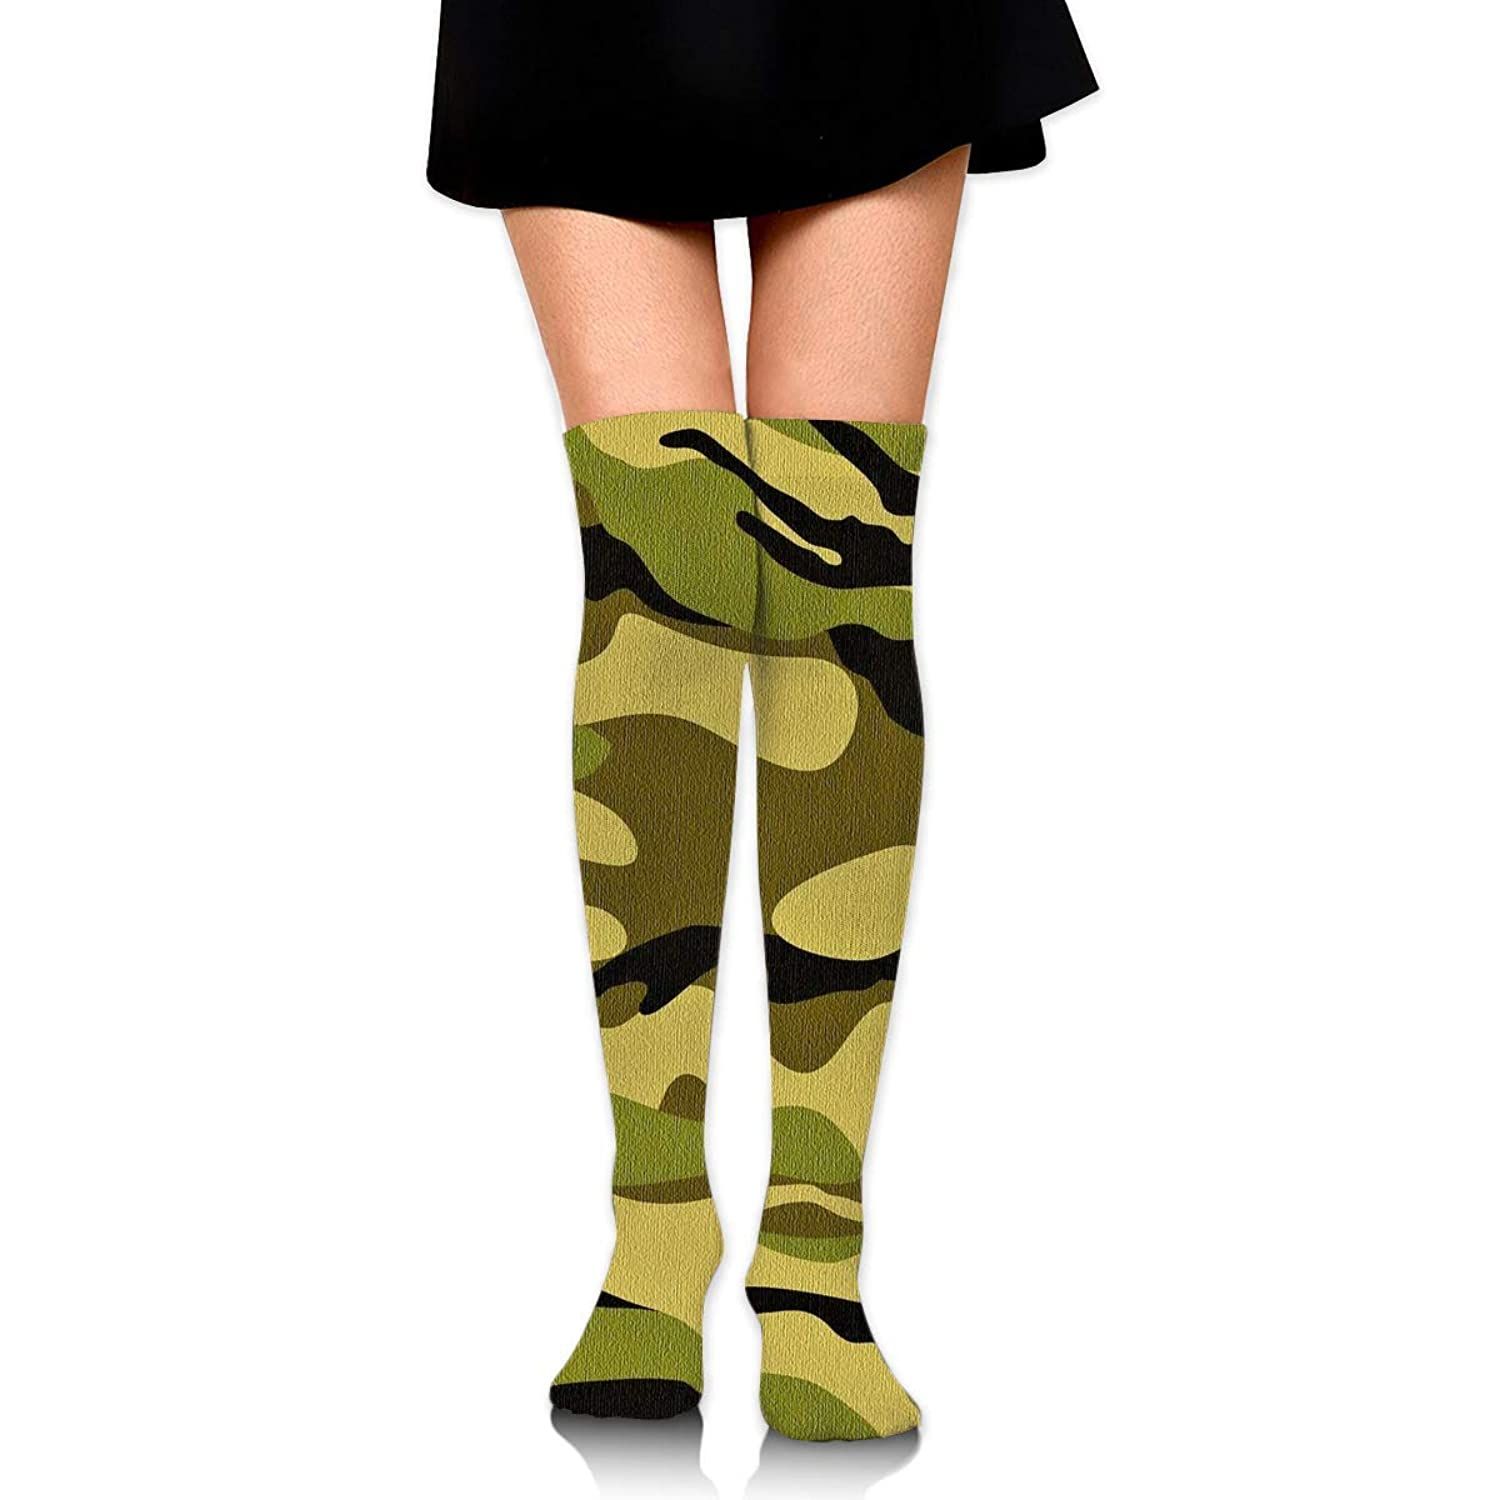 MKLOS 通気性 圧縮ソックス Breathable Classic Warmer Tube Leg Stockings Army Camouflage 3D Camo Print Exotic Psychedelic Print Compression High Tube Thigh Boot Stockings Knee High Women Girl